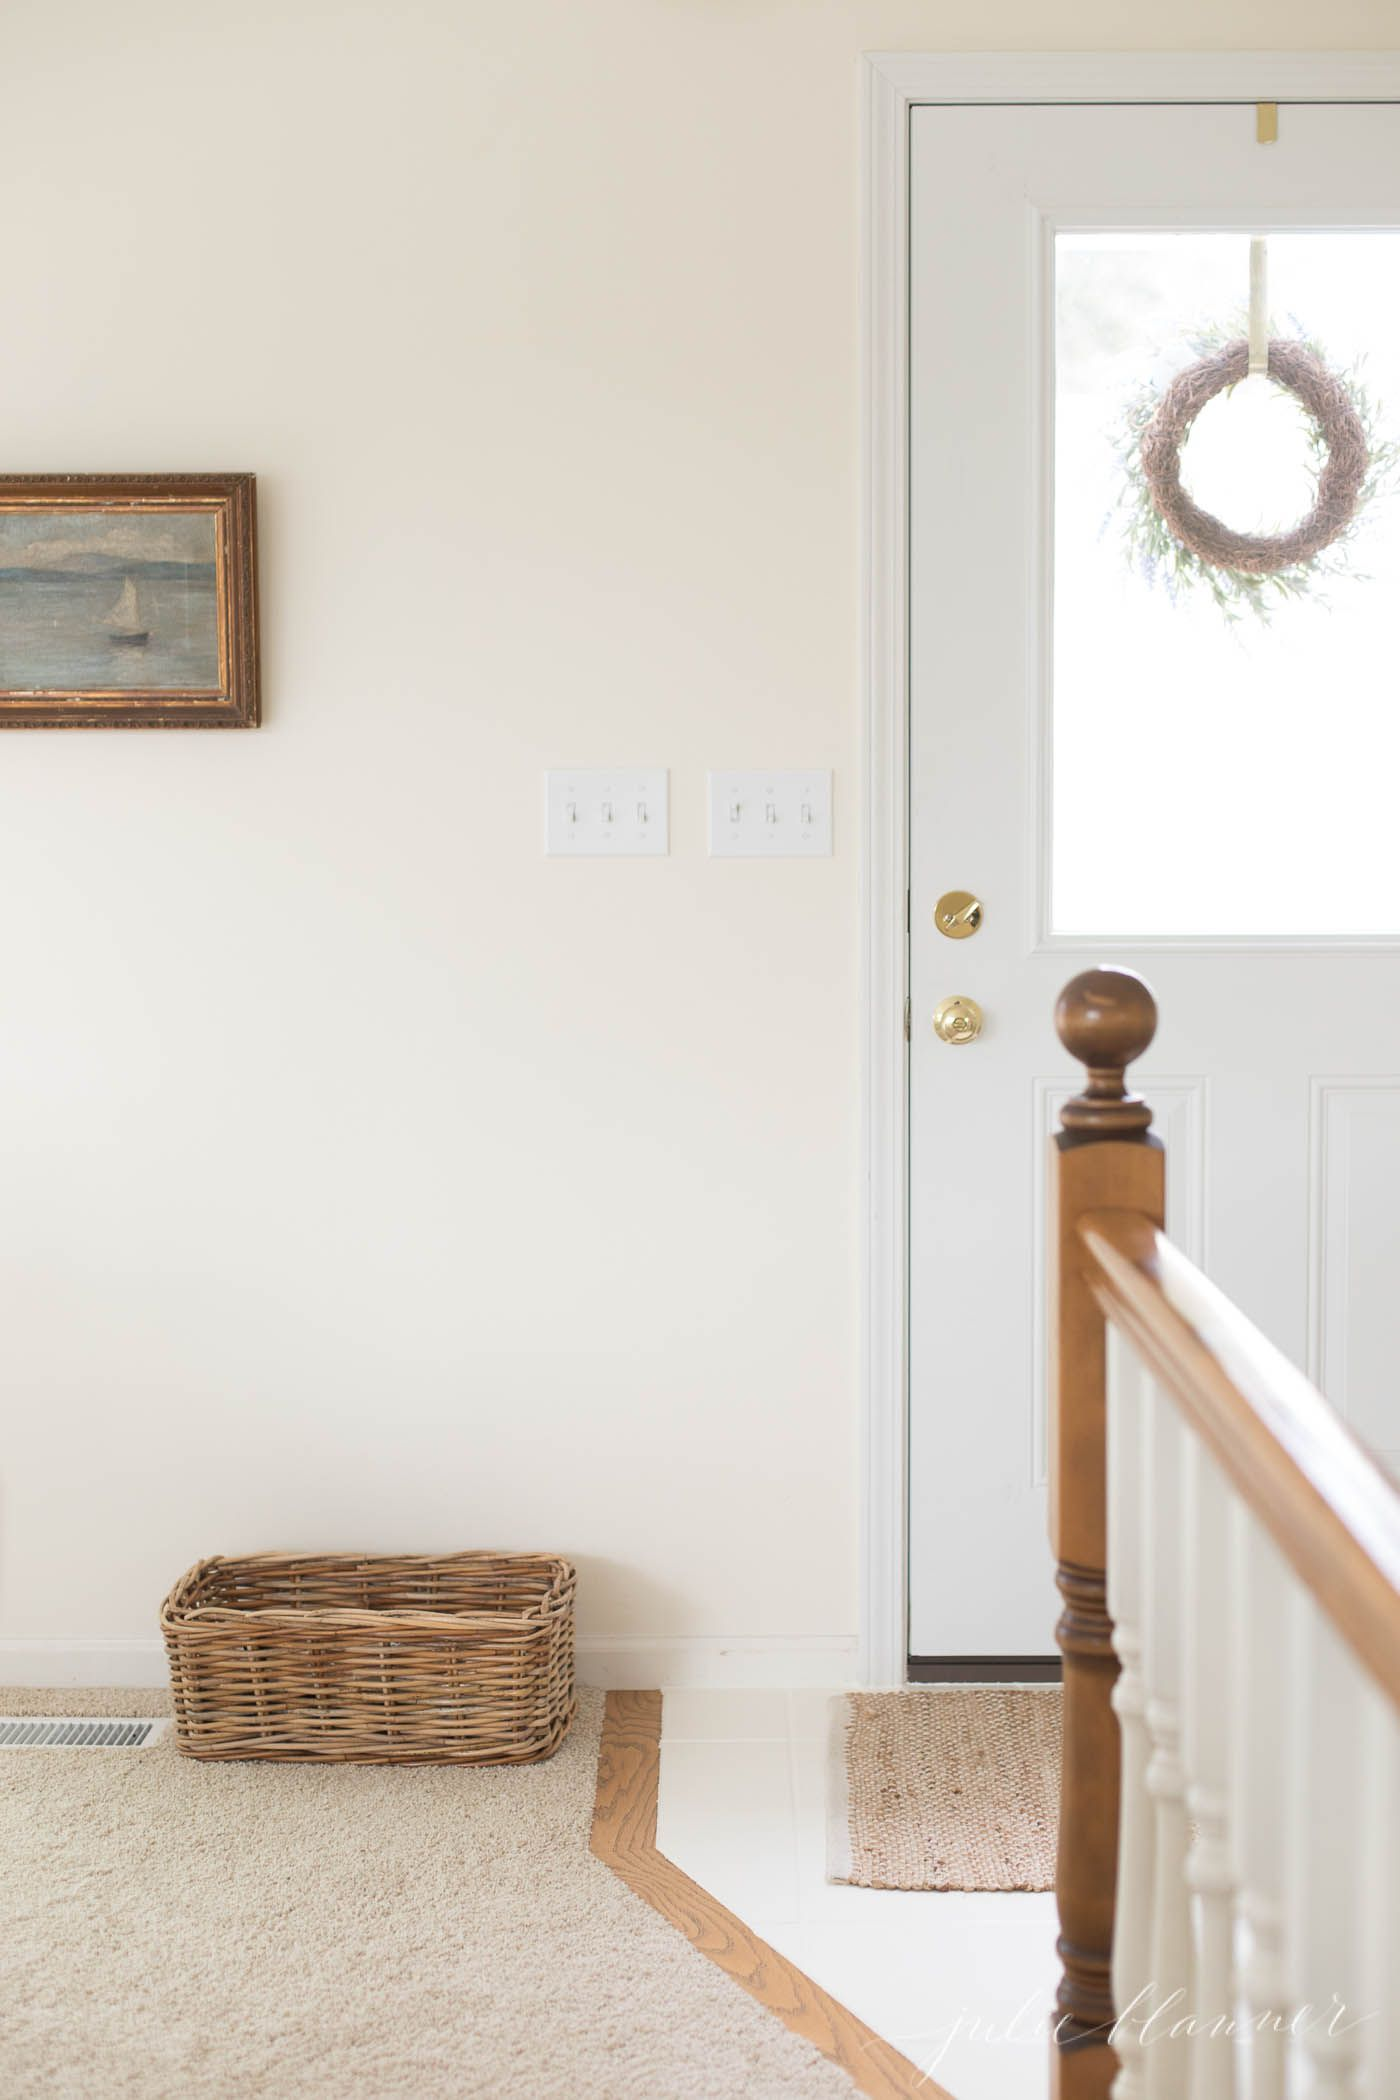 Learn Which Tile Paint To Use How To Prime And Prep For A Beautiful